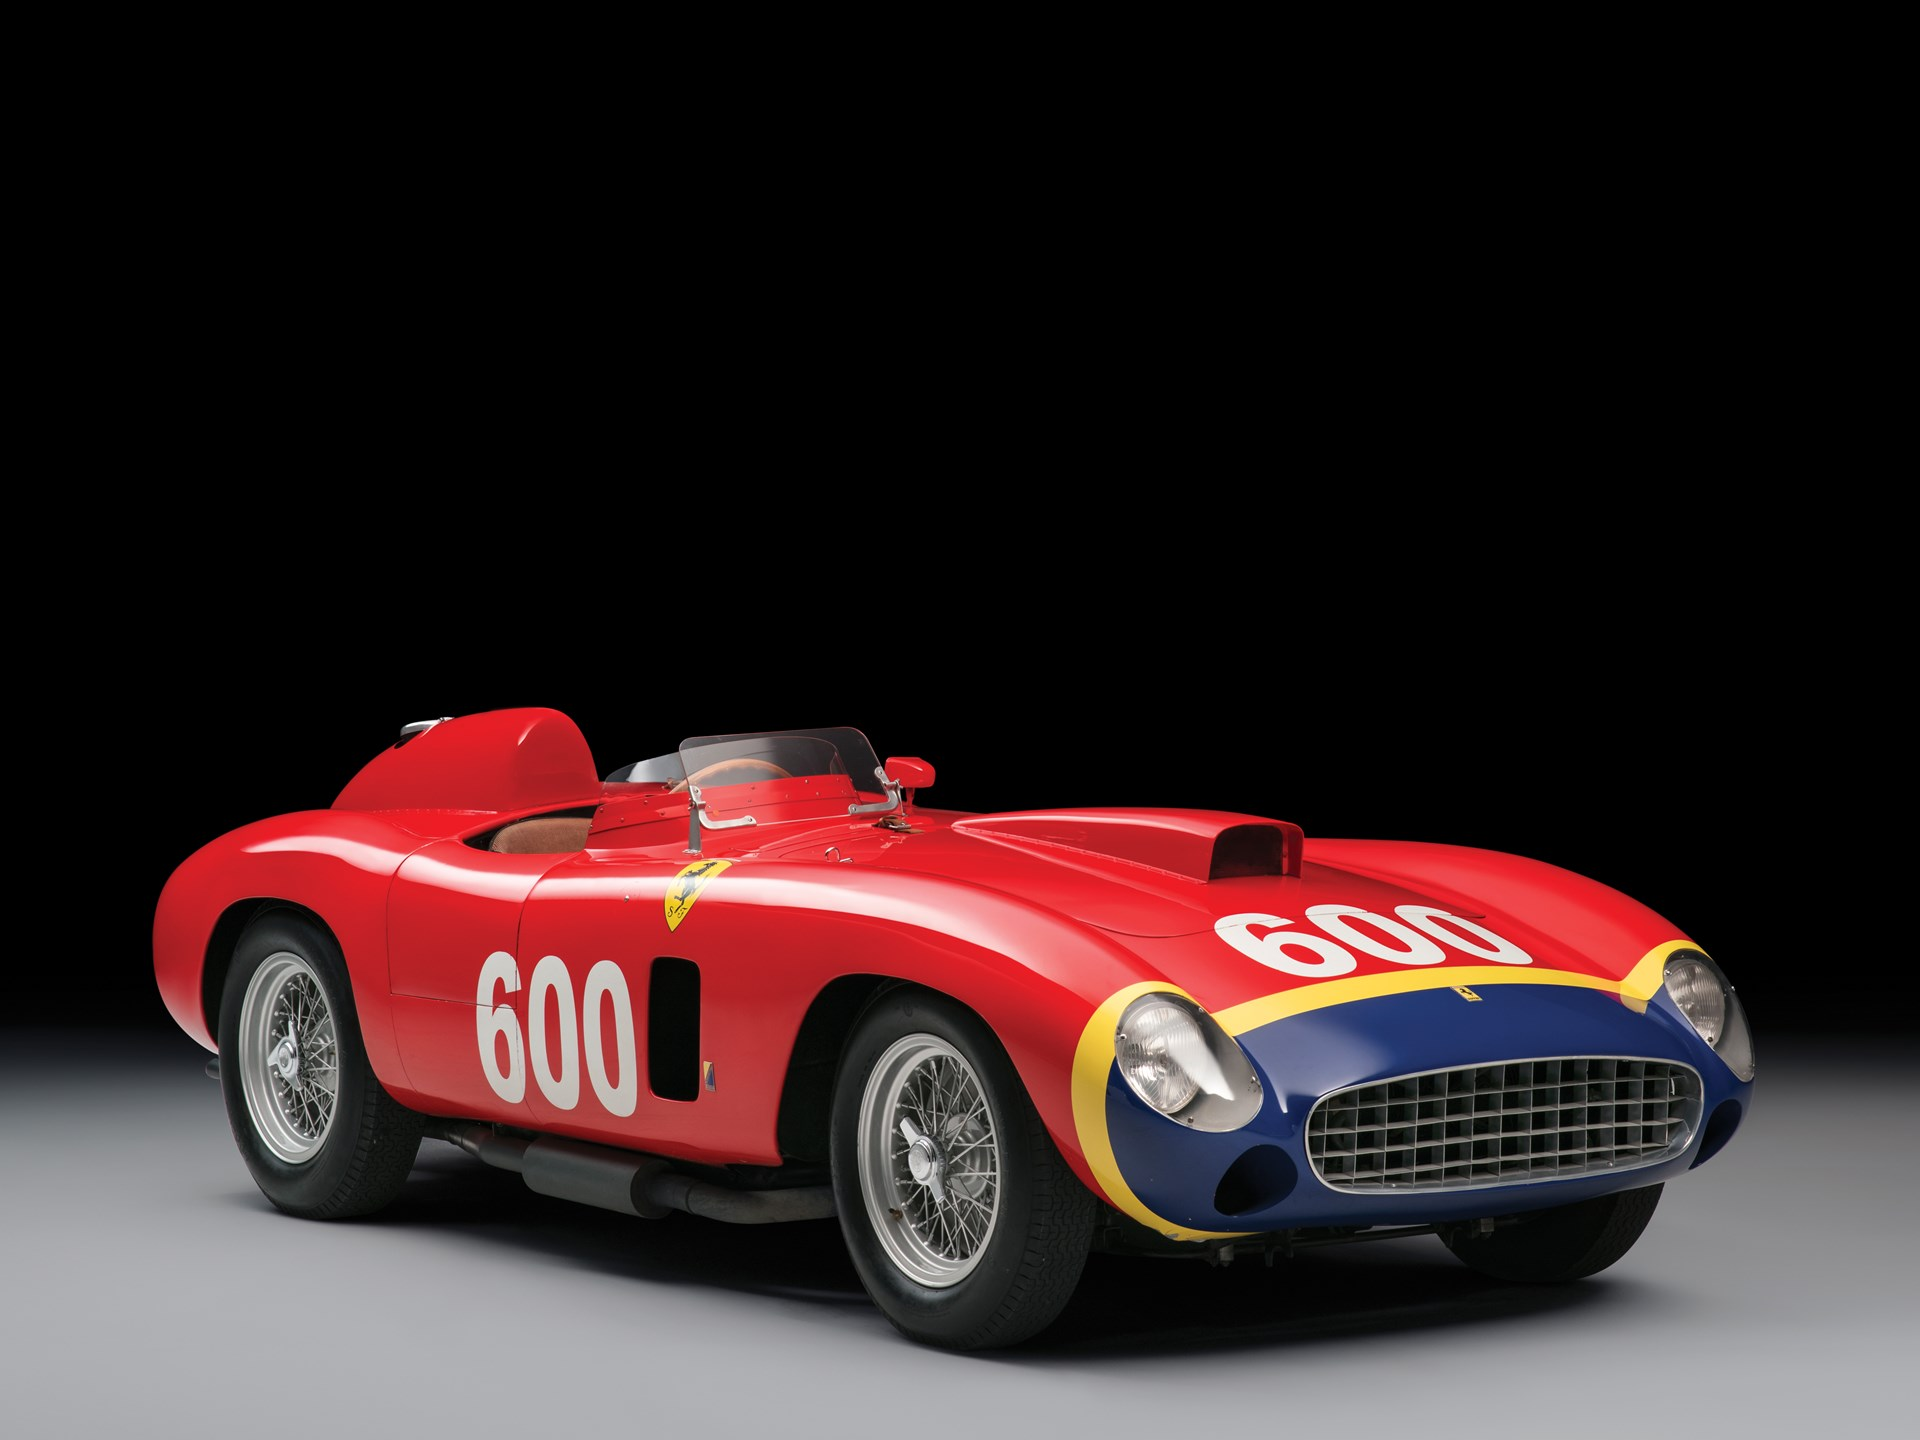 Ferrari 290 mm price